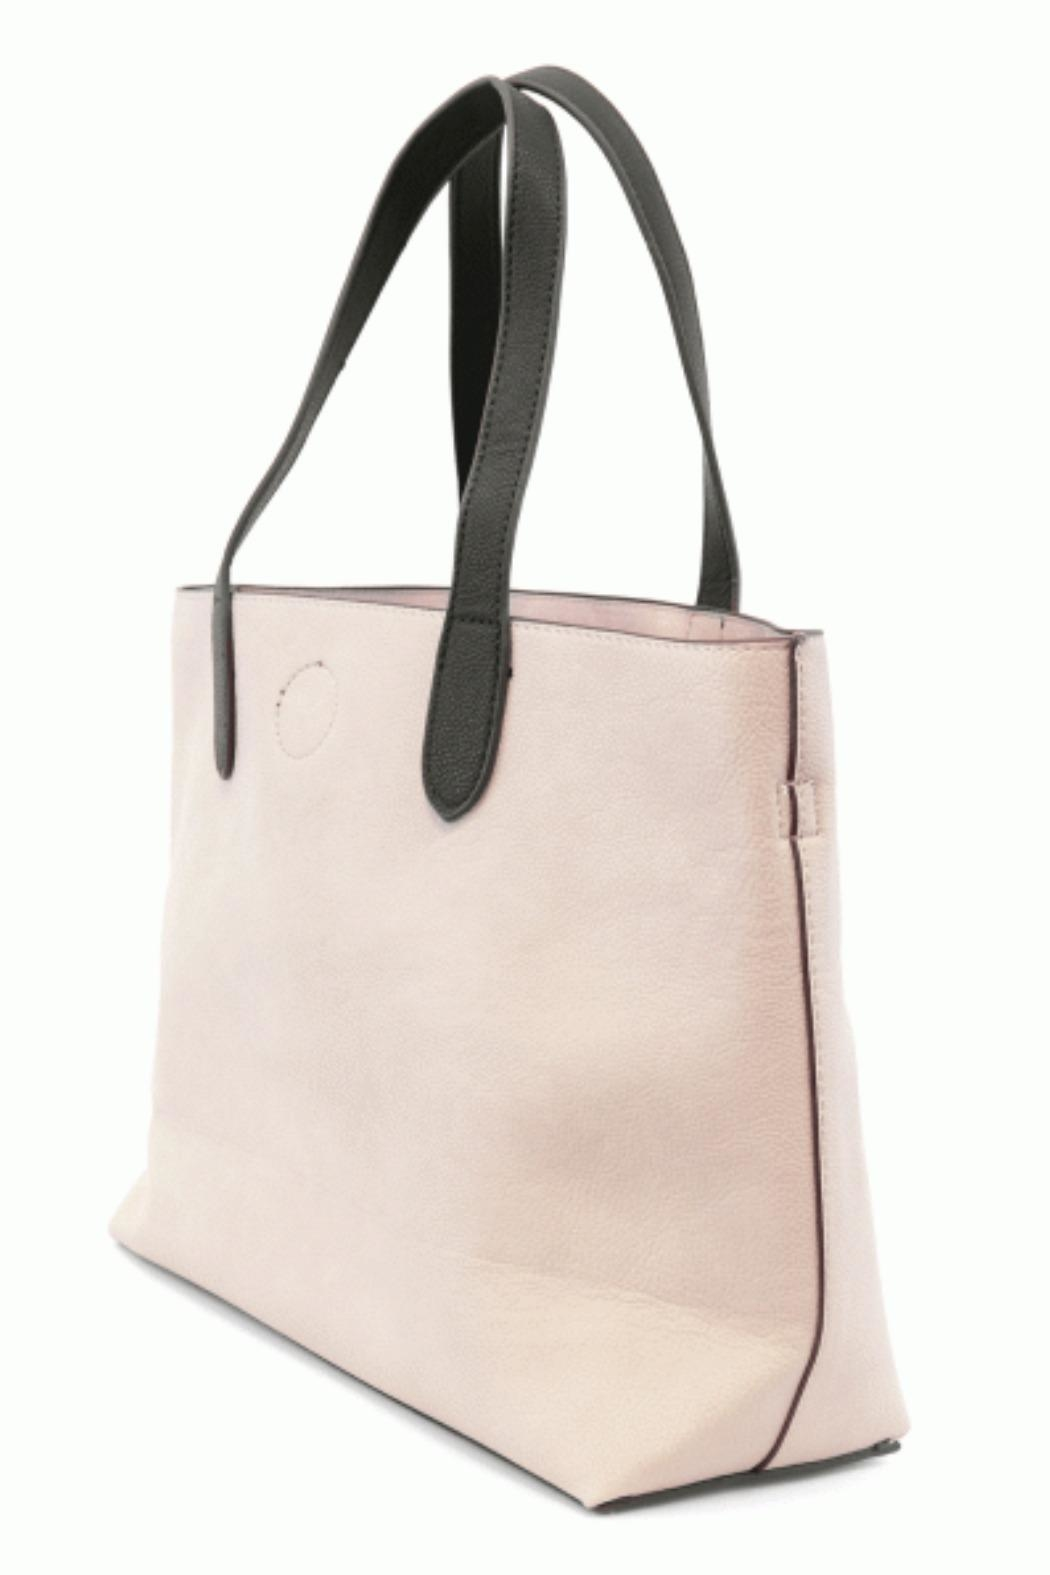 Joy Susan Accessories Two-Toned Tote - Side Cropped Image